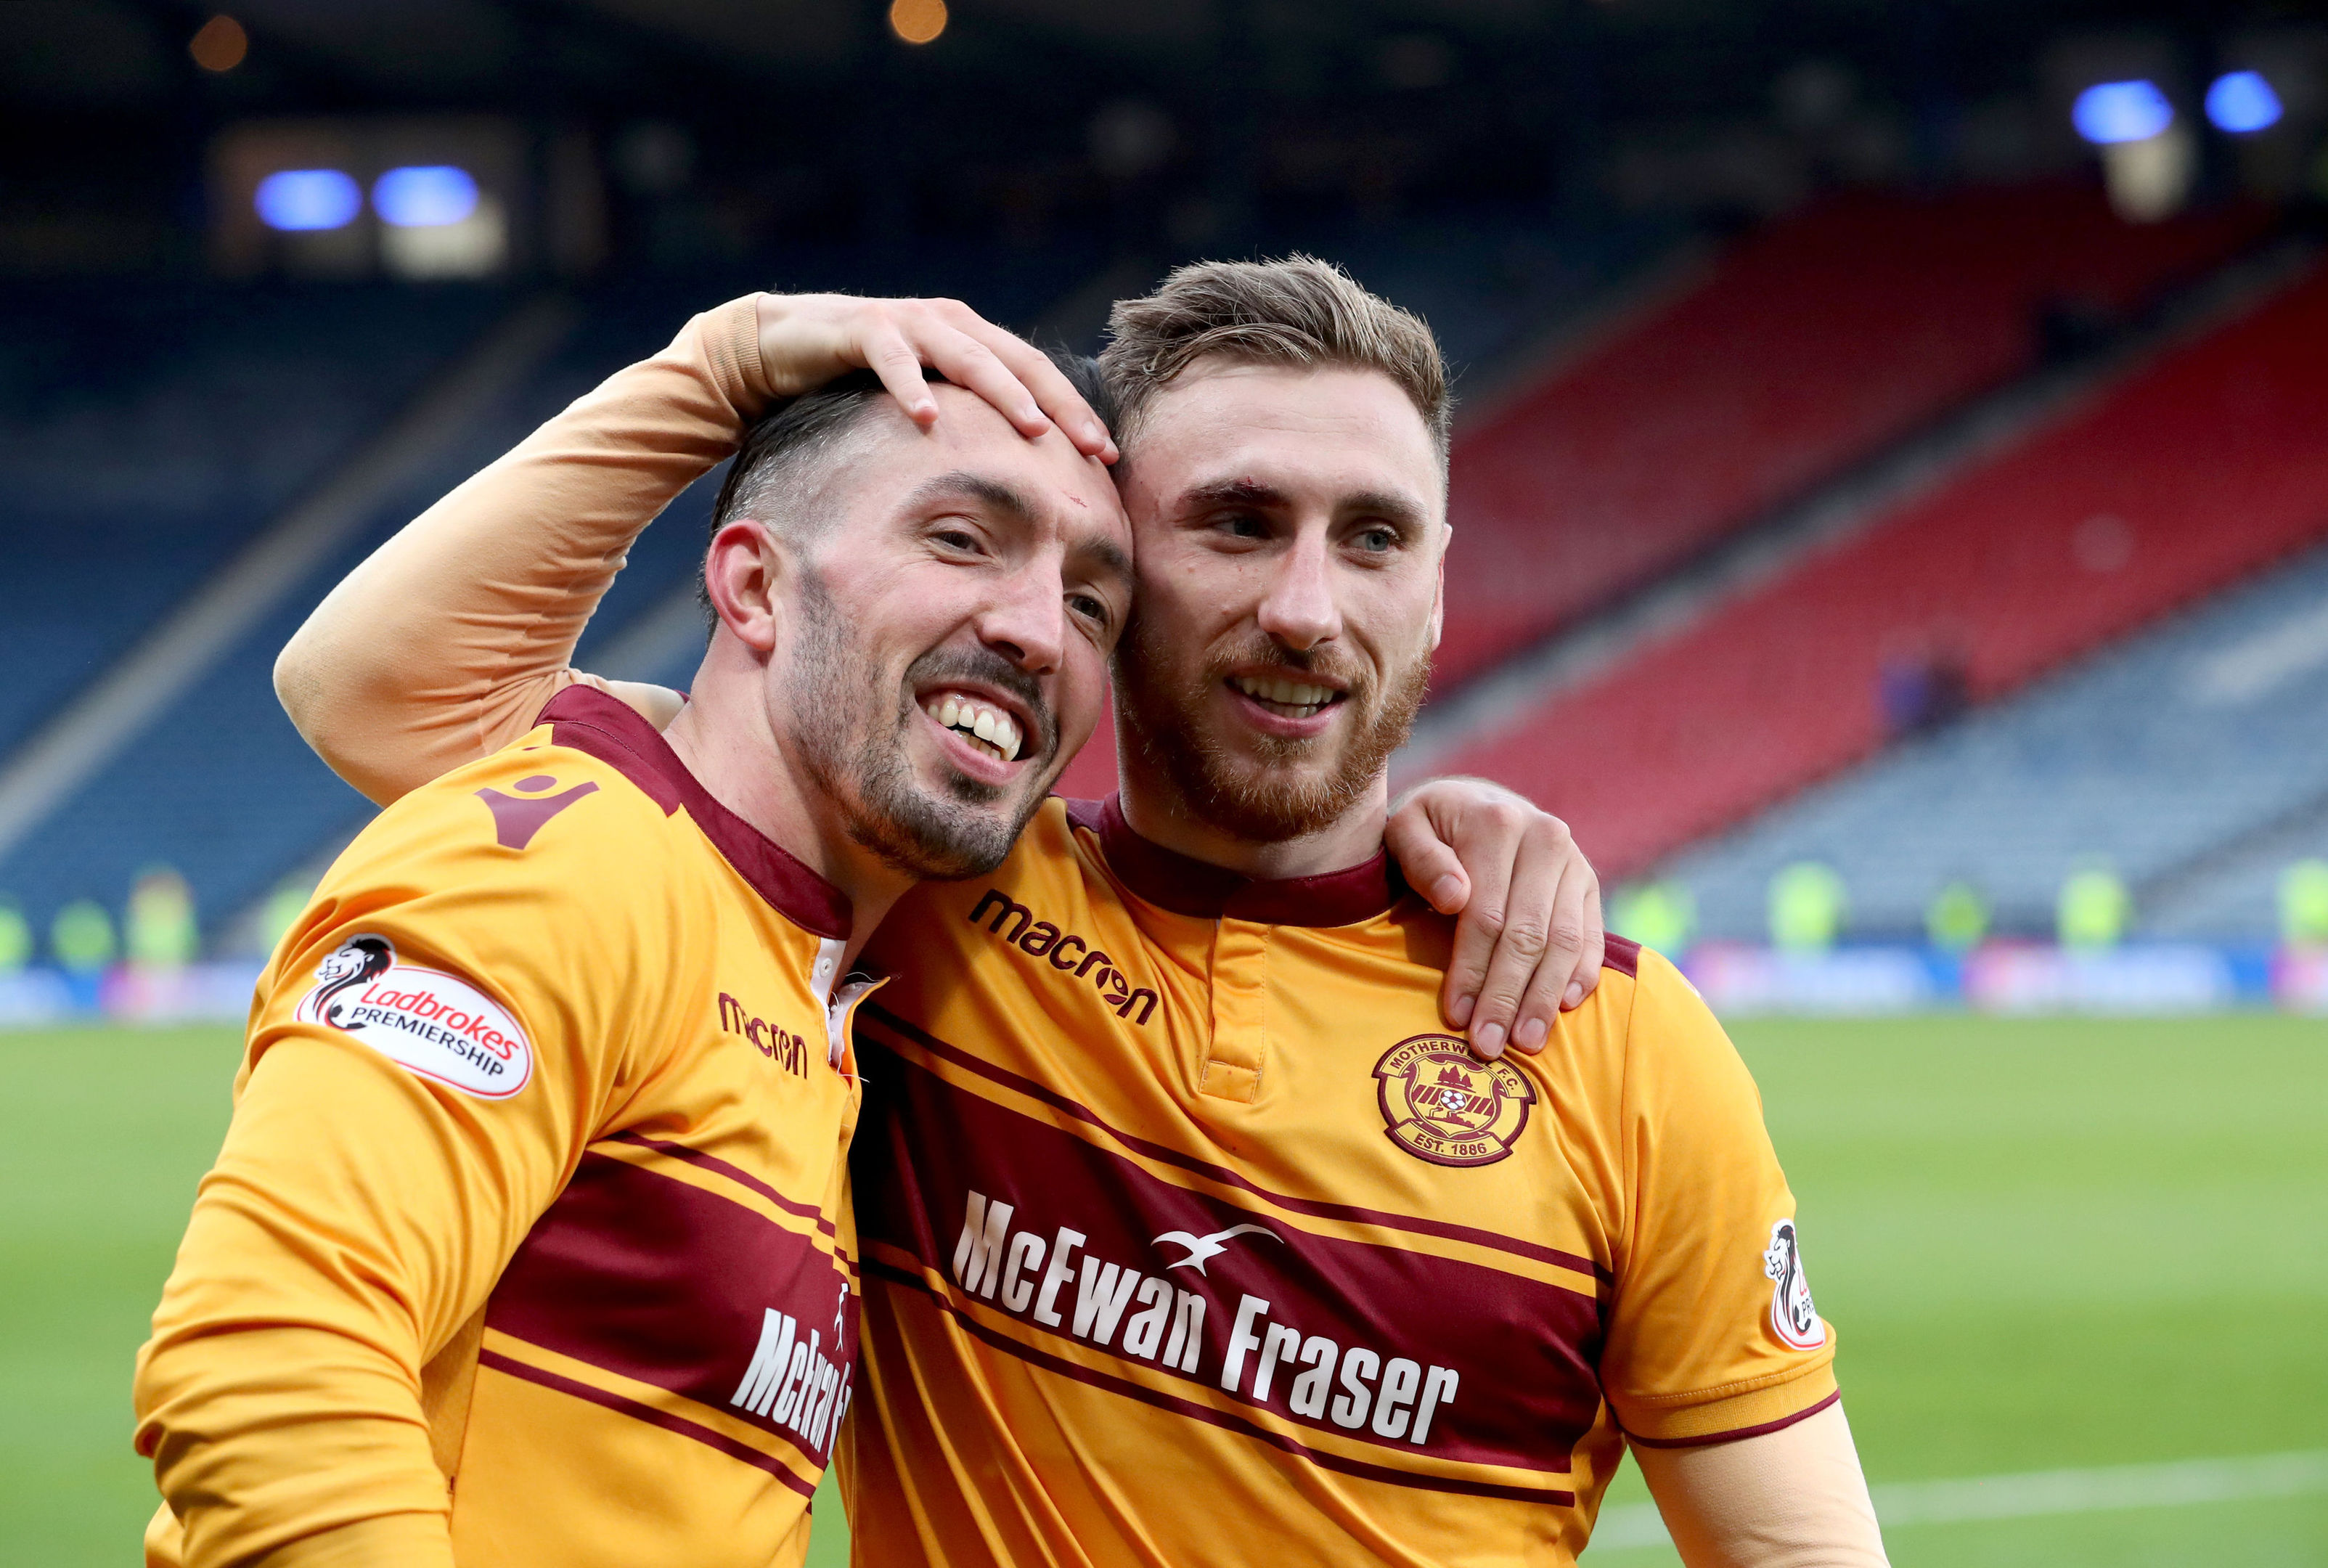 Motherwell's Ryan Bowman (left) and Louis Moult celebrate (Jane Barlow/PA Wire)